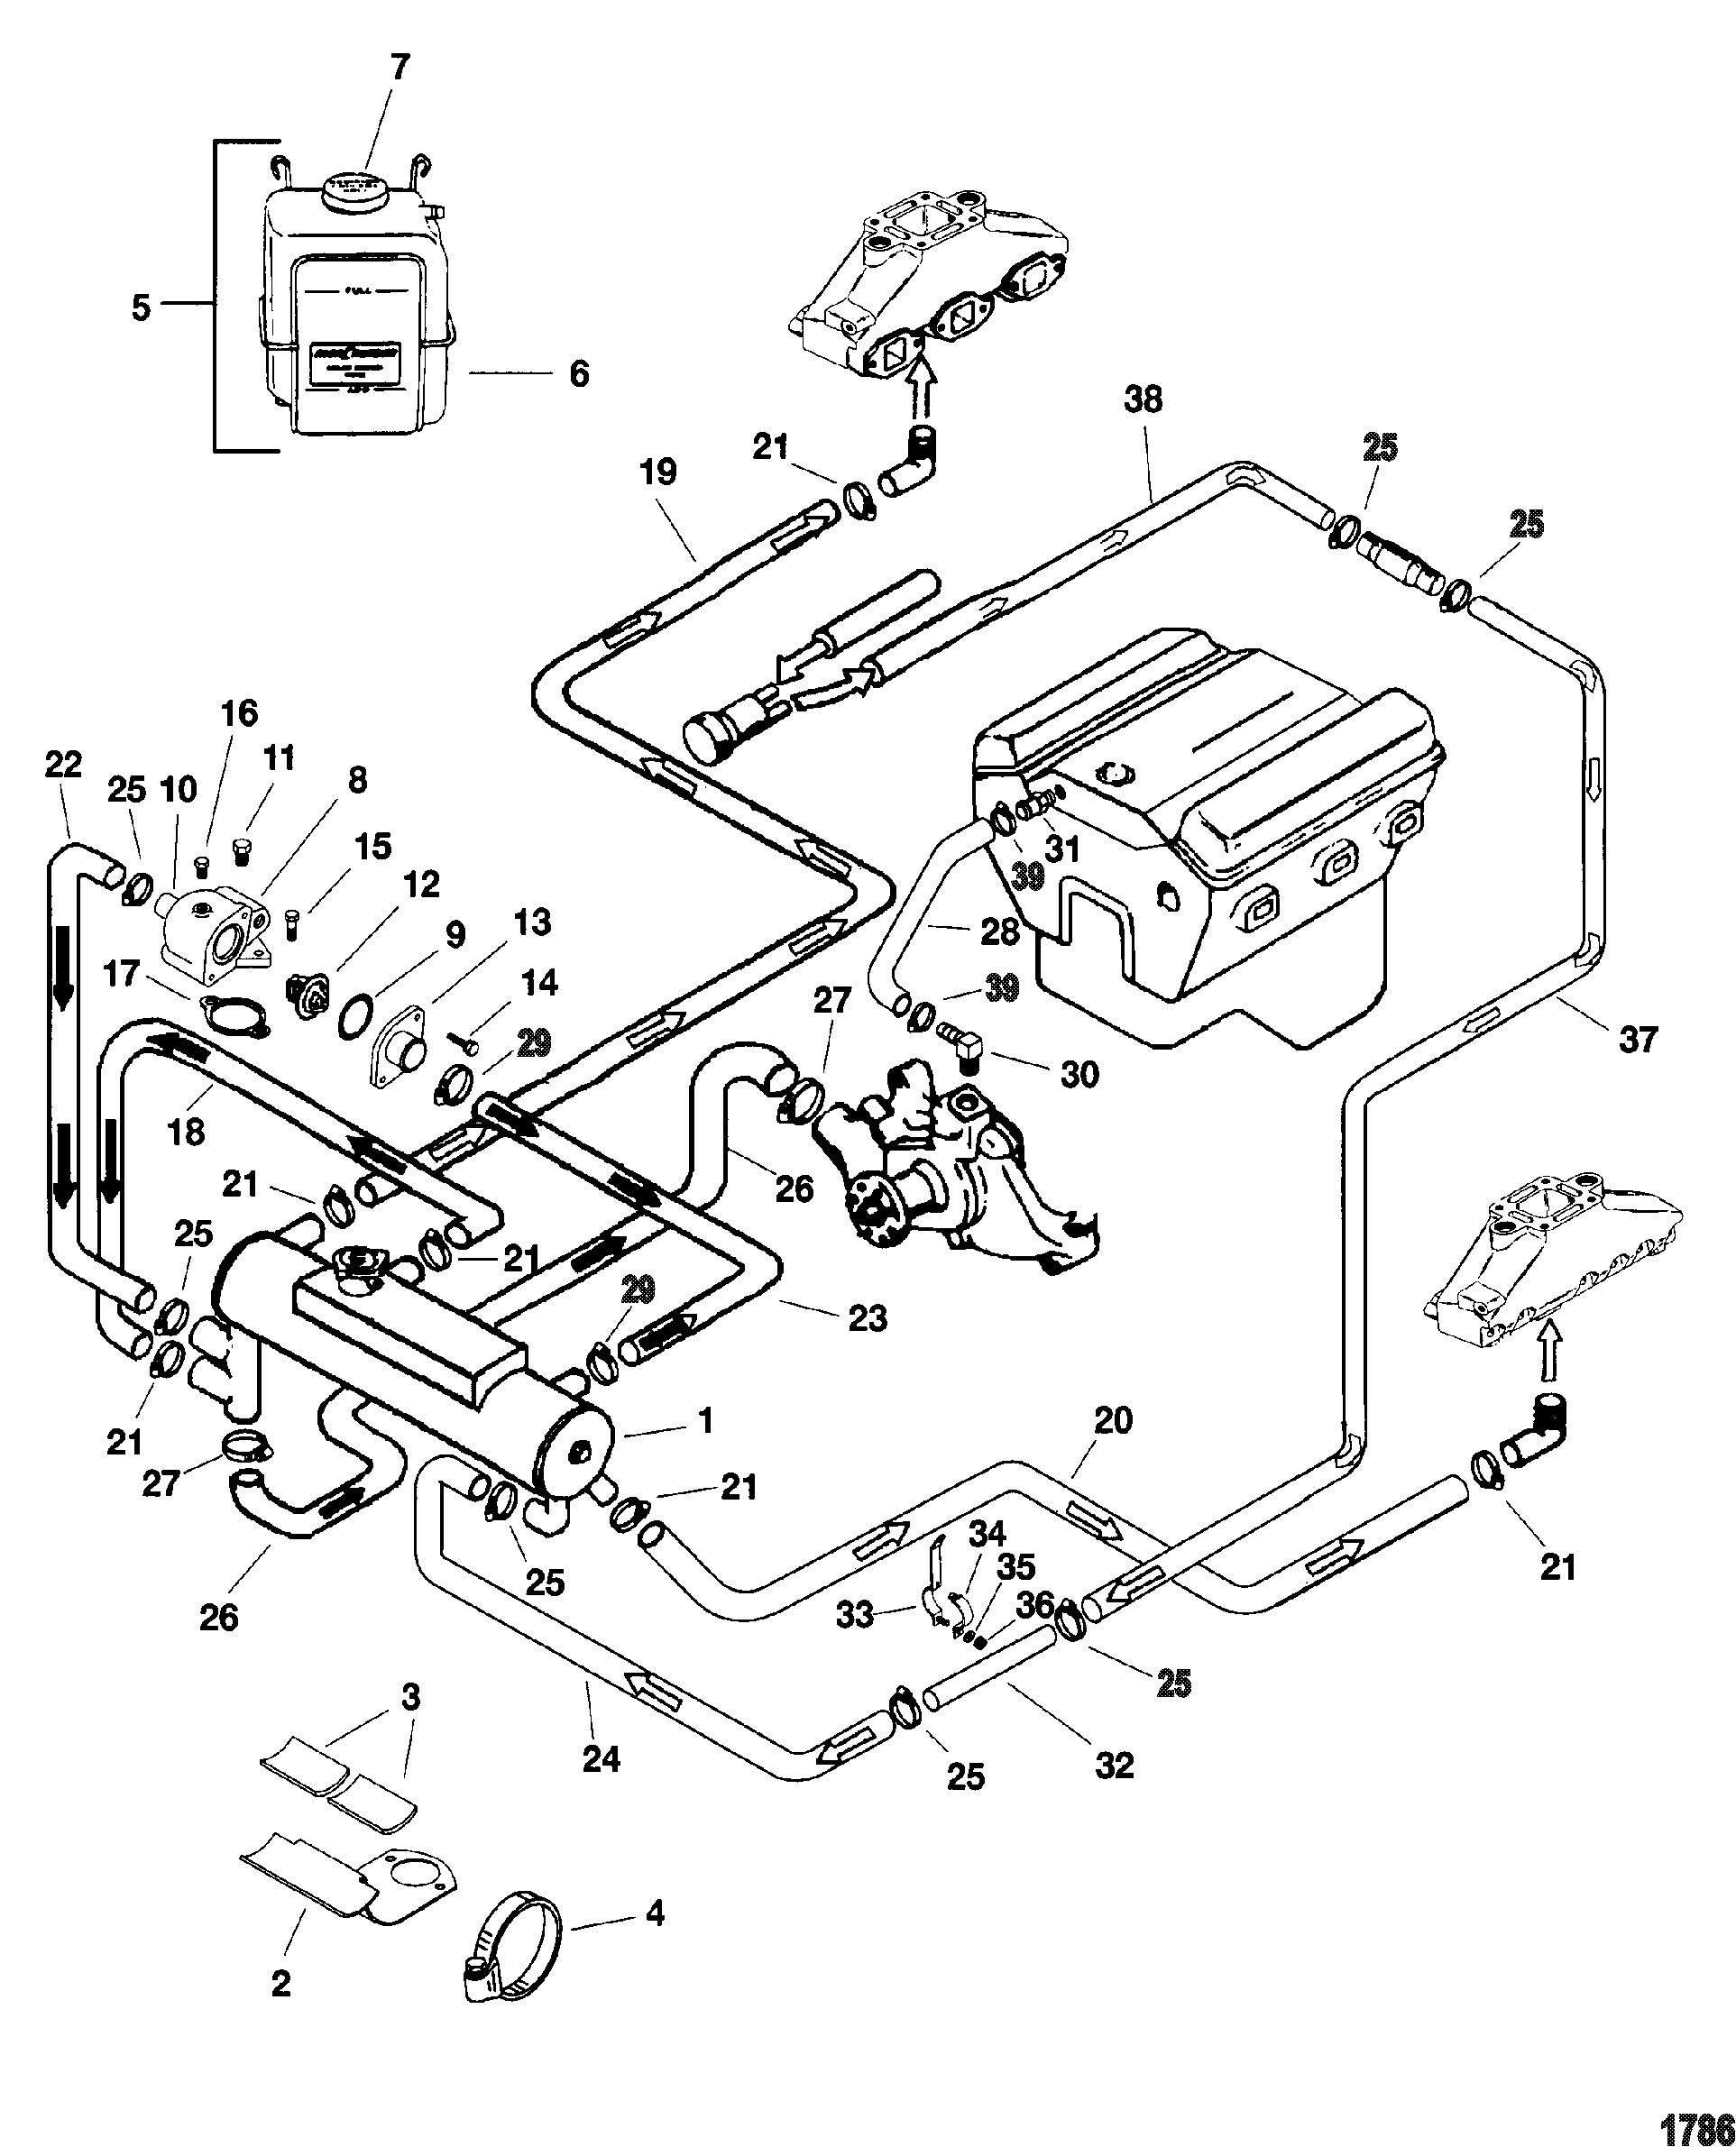 hight resolution of gmc v6 engine diagram wiring library dodge caravan 3 3 engine diagram 2004 gmc w5500 engine timing